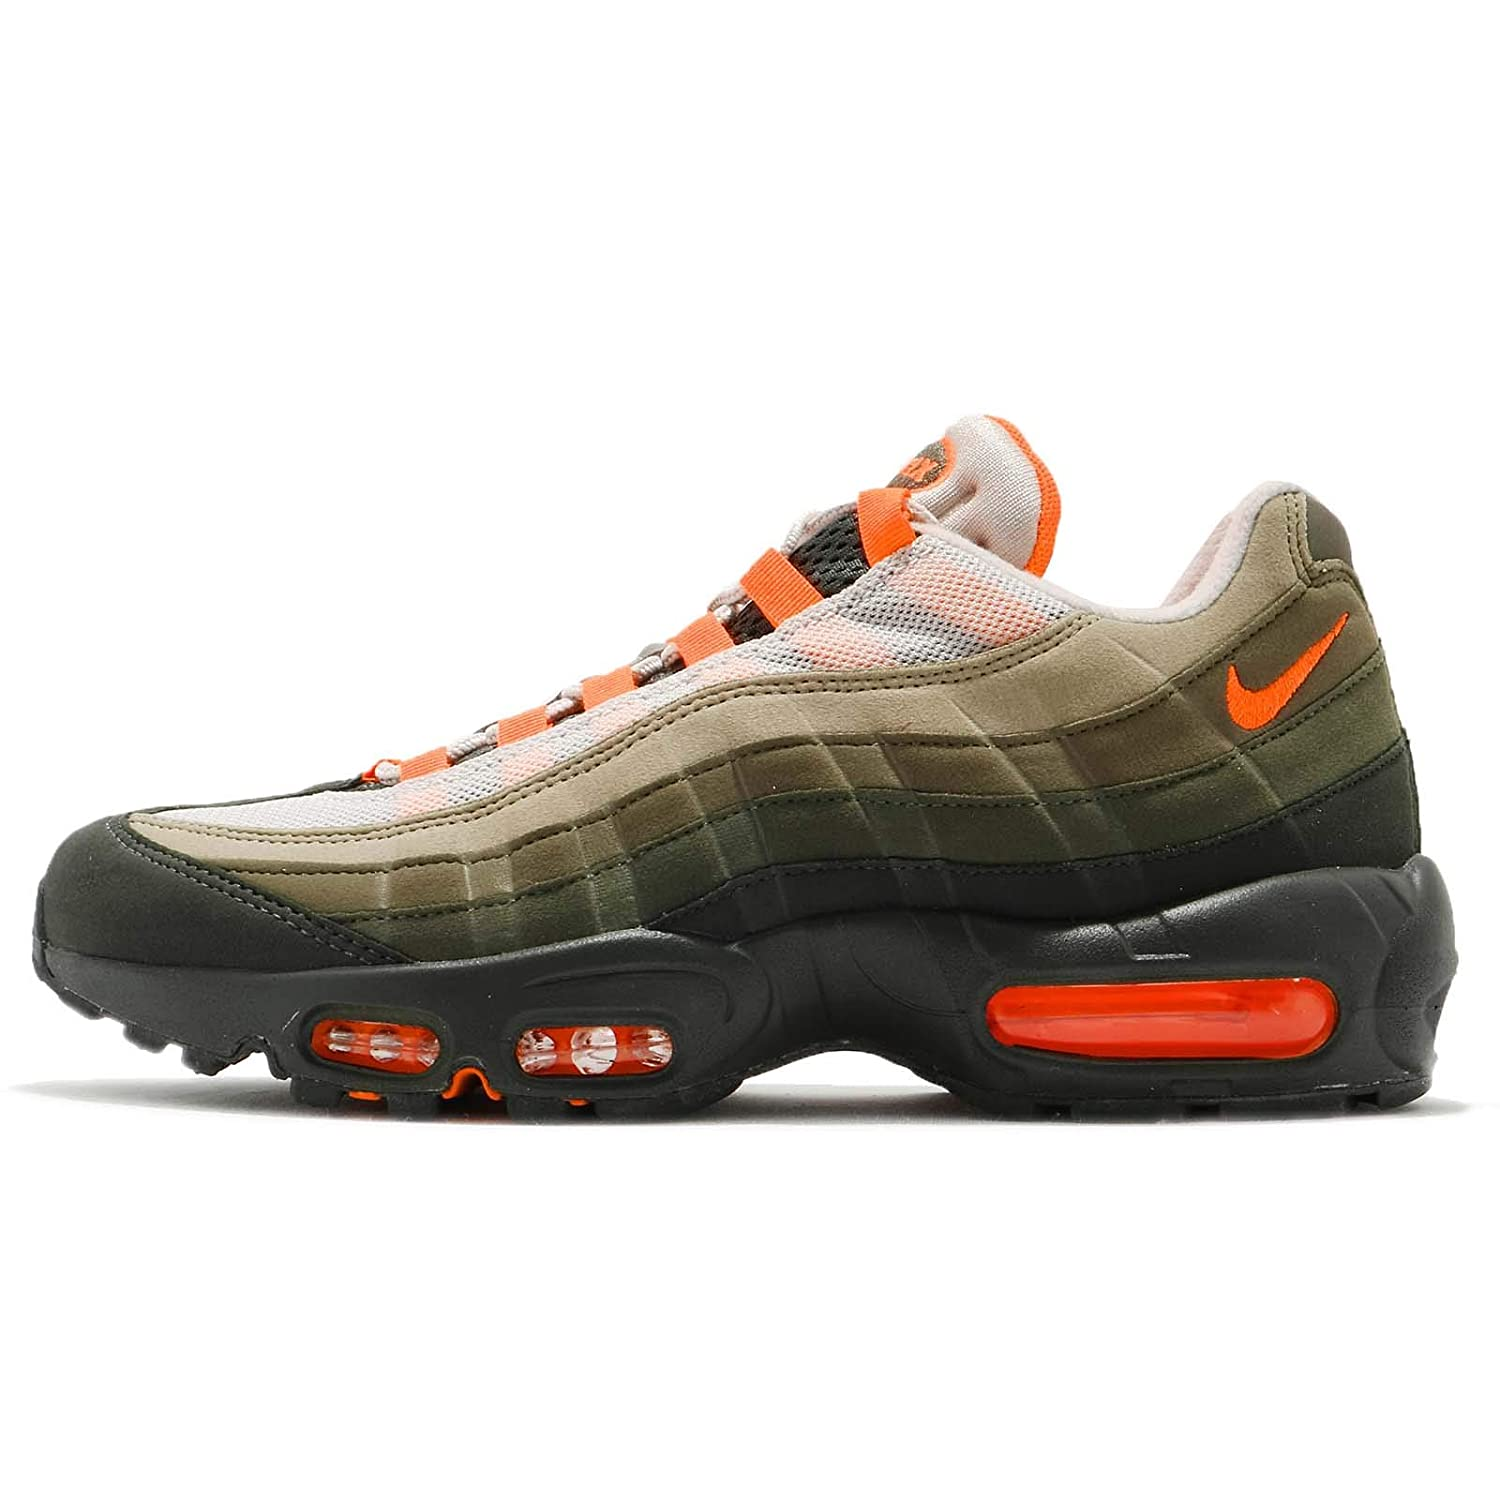 online retailer 7c970 2dec0 Amazon.com   Nike Womens Air Max 95 OG Lifestyle Hiking, Trail Shoes Green  6 Medium (B, M)   Fashion Sneakers